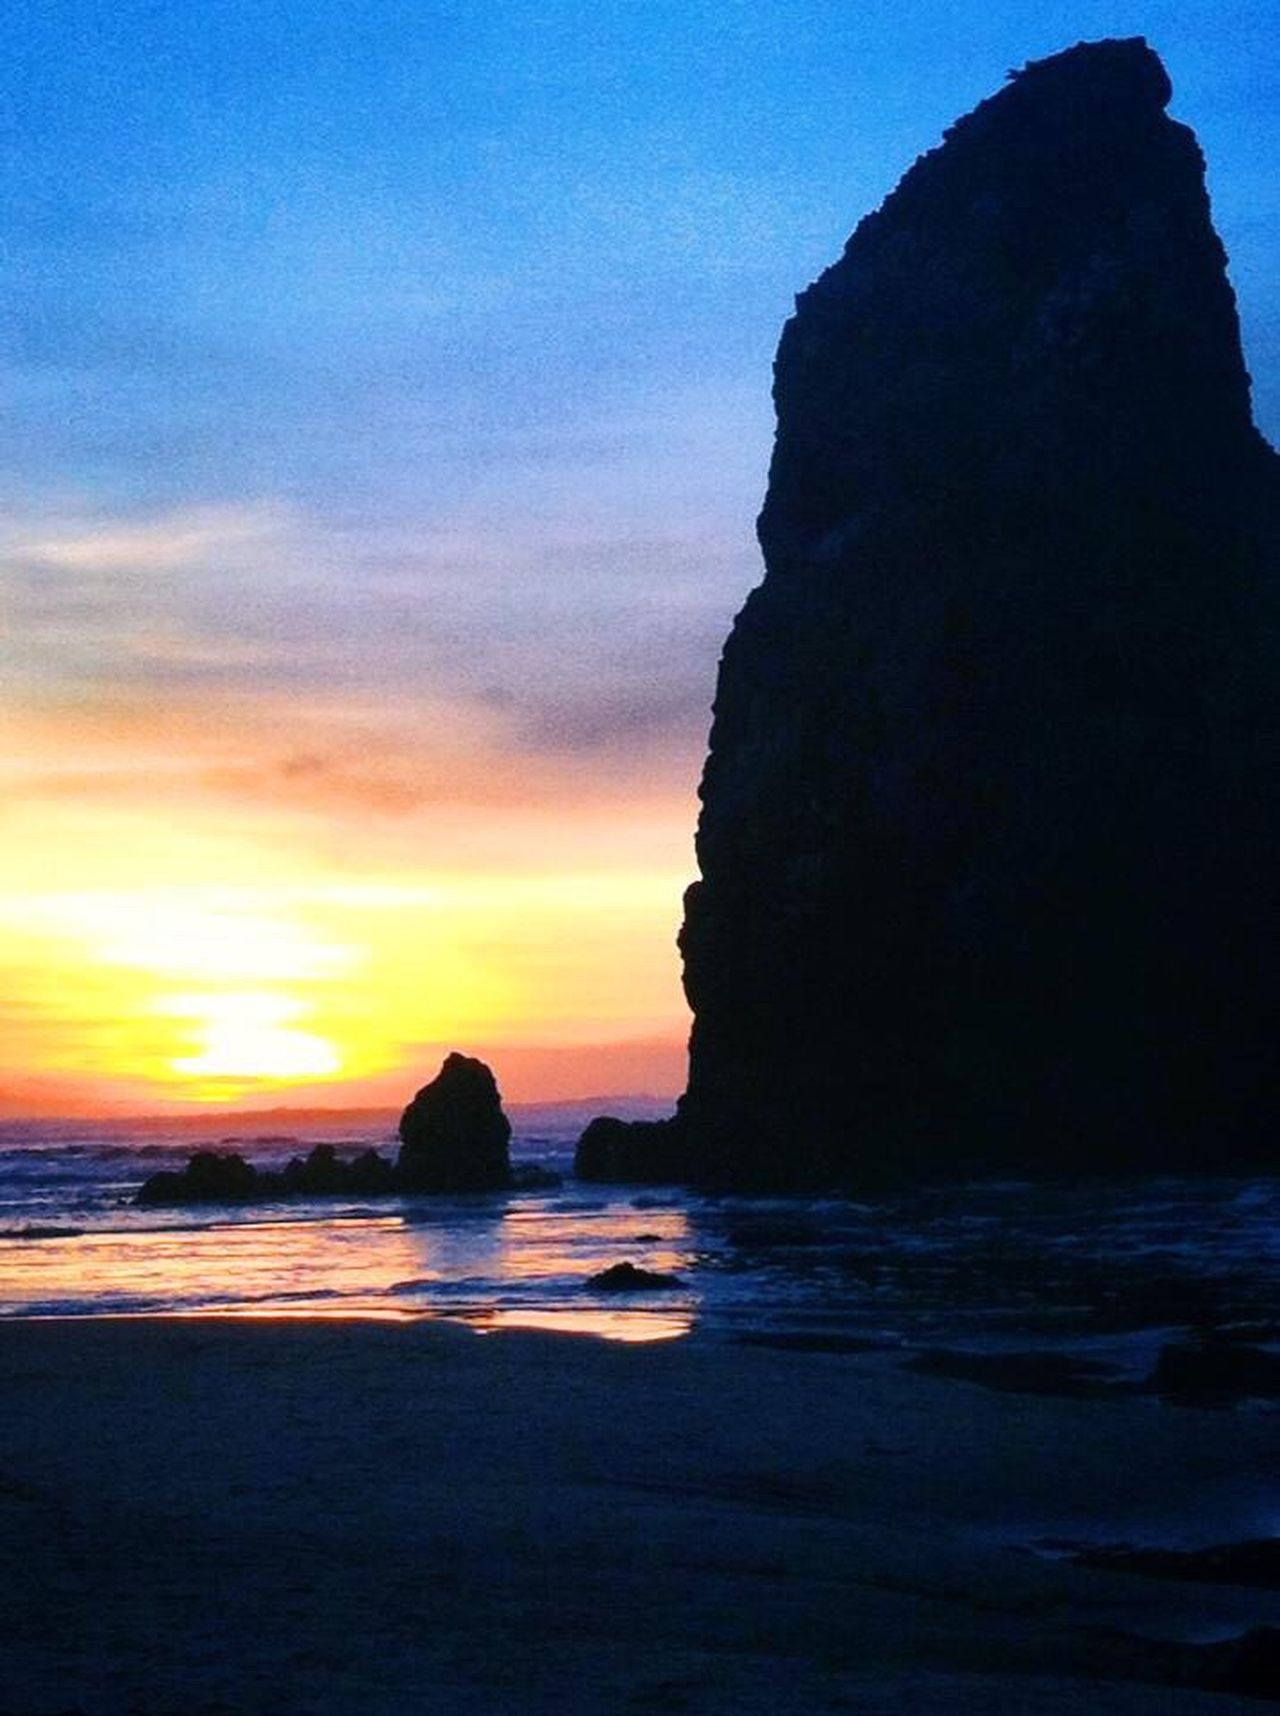 Sea Beauty In Nature Sunset Nature Scenics Rock - Object Rock Formation Horizon Over Water Tranquil Scene Sky Tranquility Cannon Beach Idyllic Travel Destinations No People Cliff Silhouette Beach Outdoors Day Awesome_shots Awesome Ocean Beautiful Beach Beautiful Beaches Best Sunrises And Sunsets